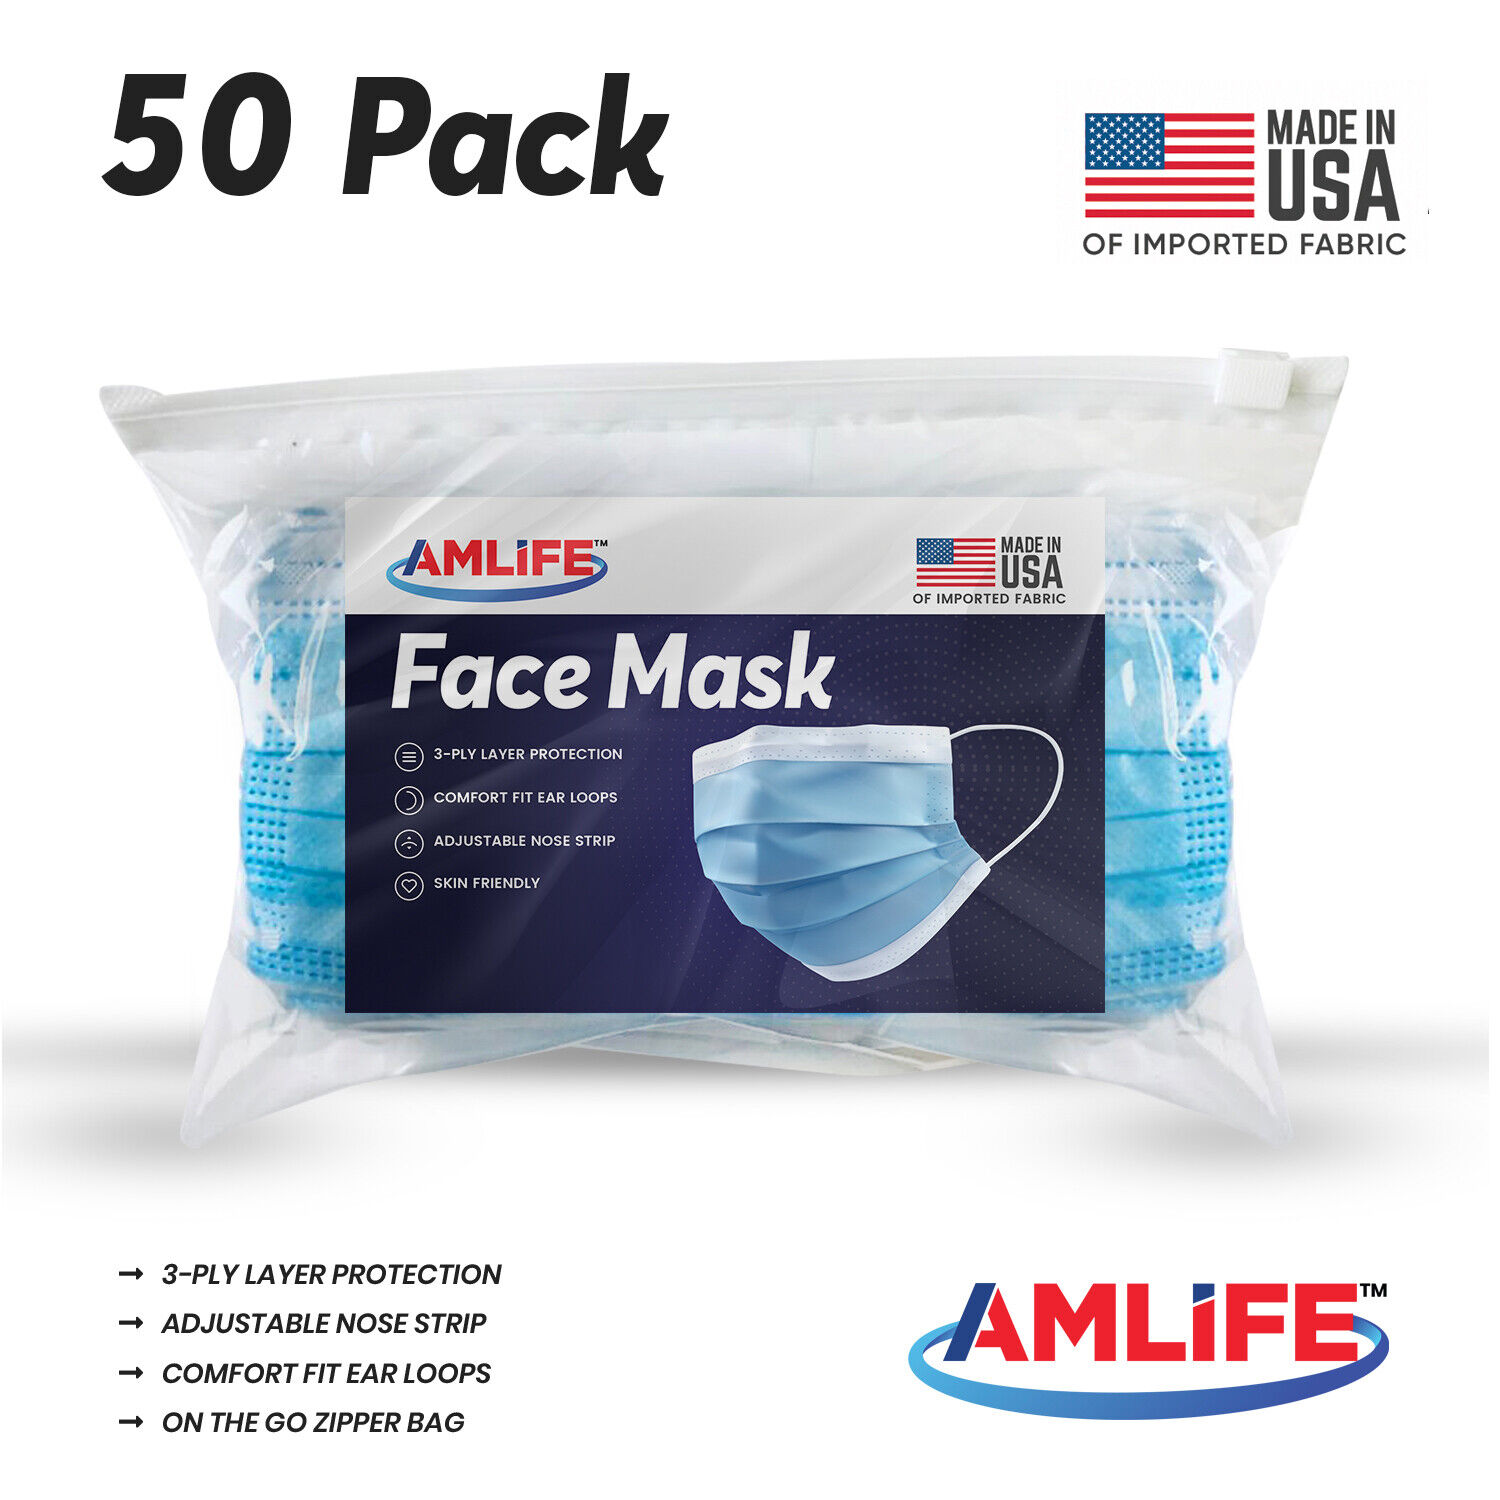 amlife-50-pack-disposable-face-mask-3-ply-filter-masks-made-in-usa-import-fabric